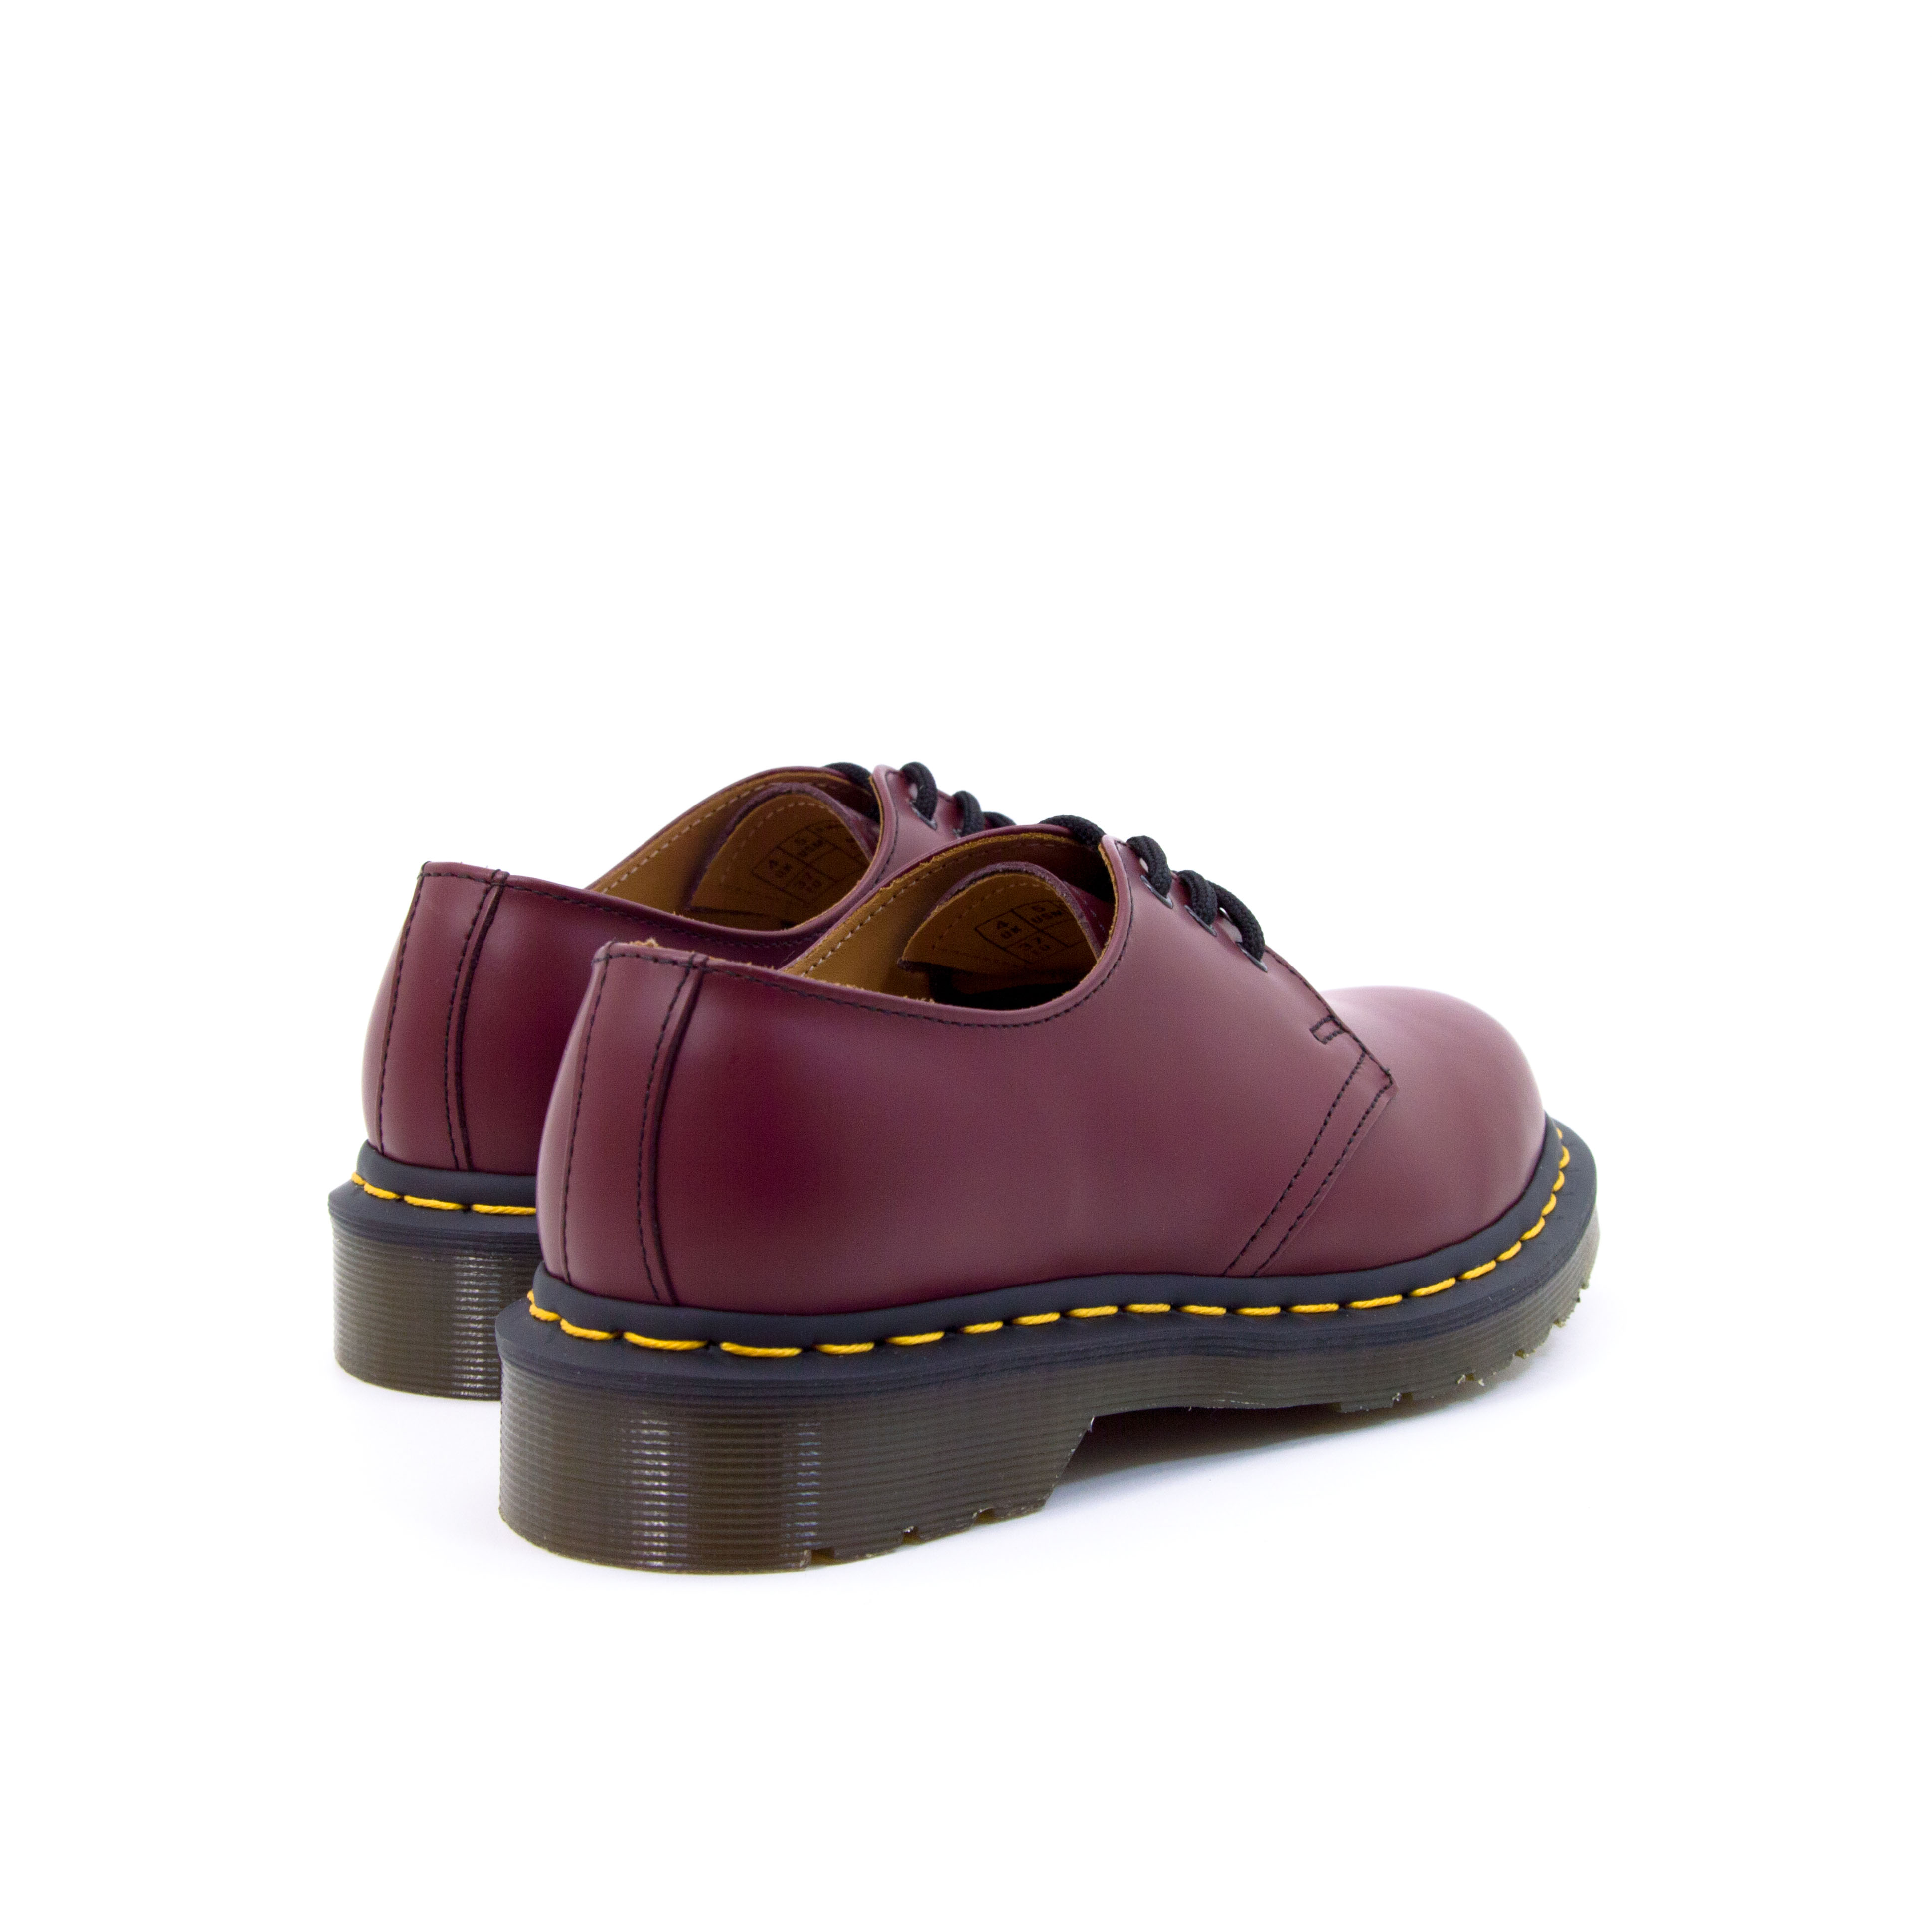 Dr. Martens - 1461 - Cherry Red Smooth